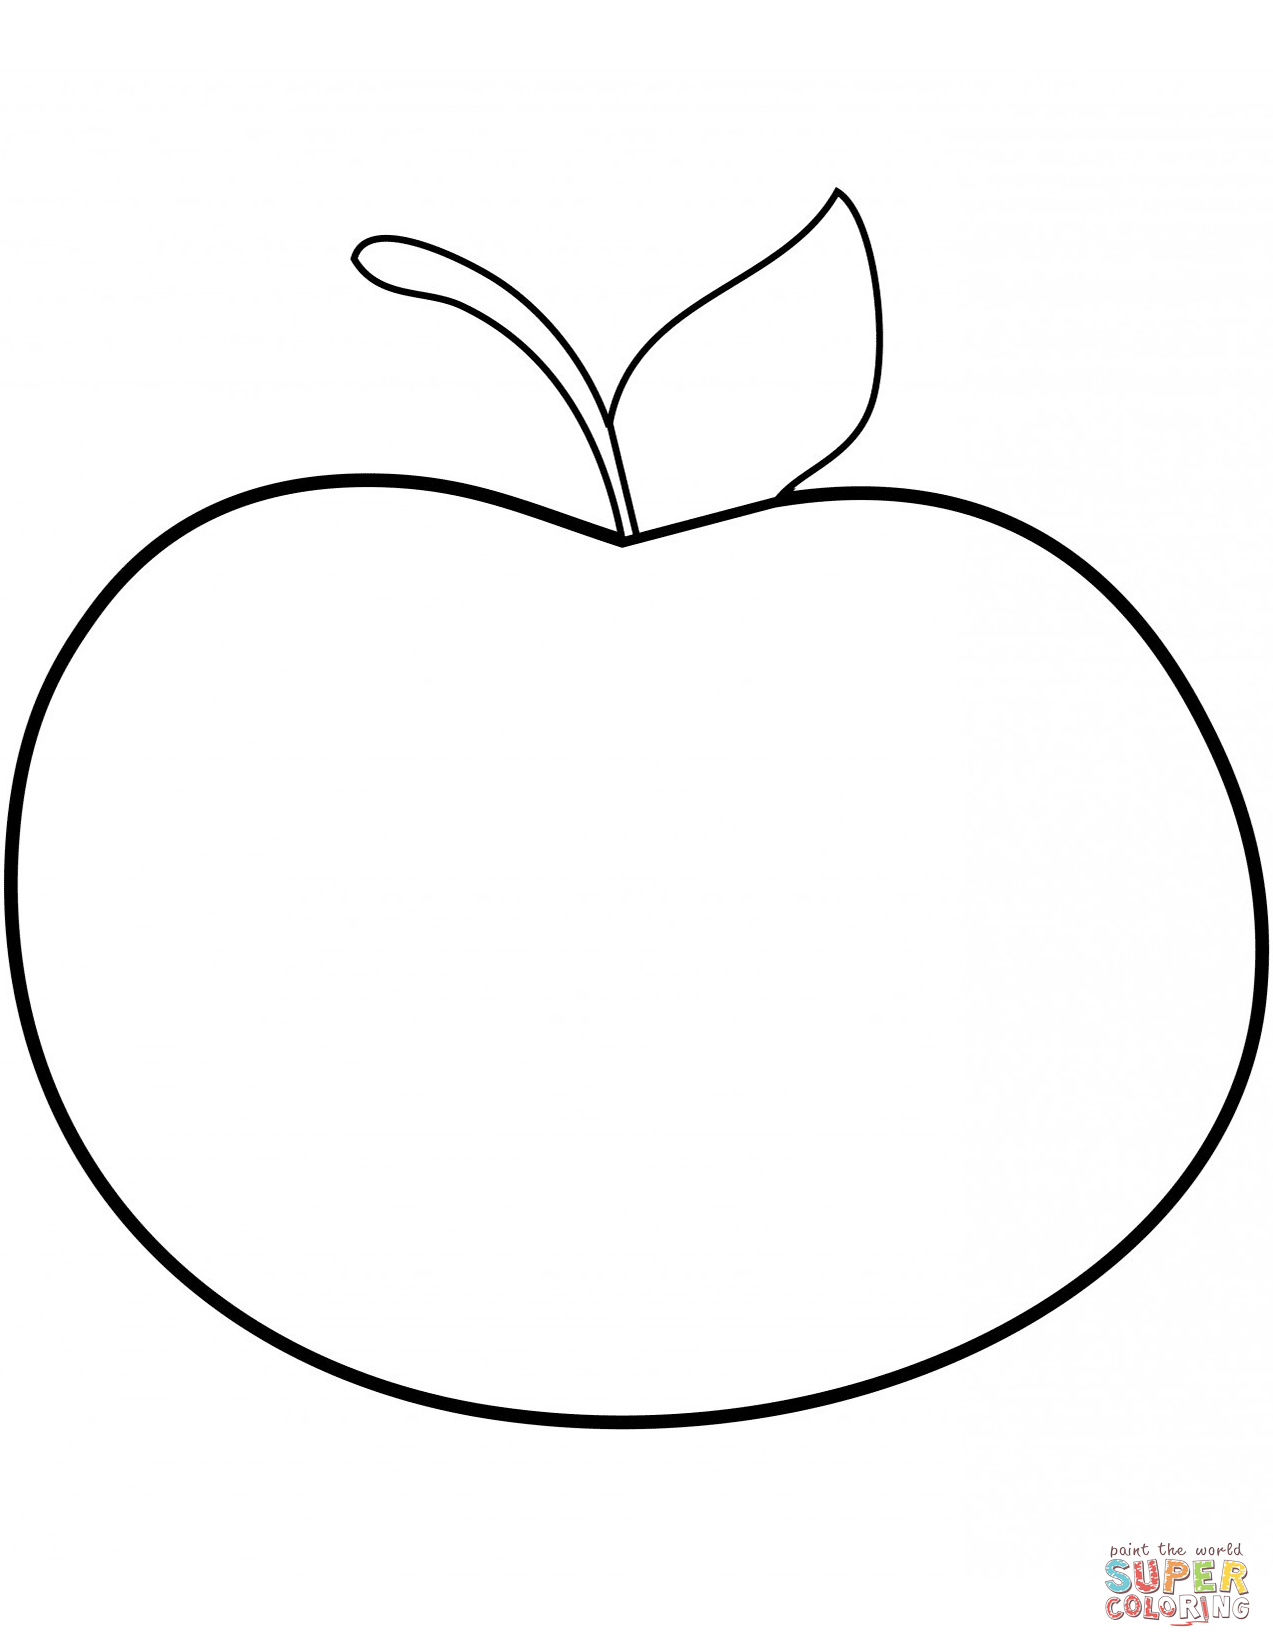 1273x1648 Proven Printable Pictures Of Apples Simple App